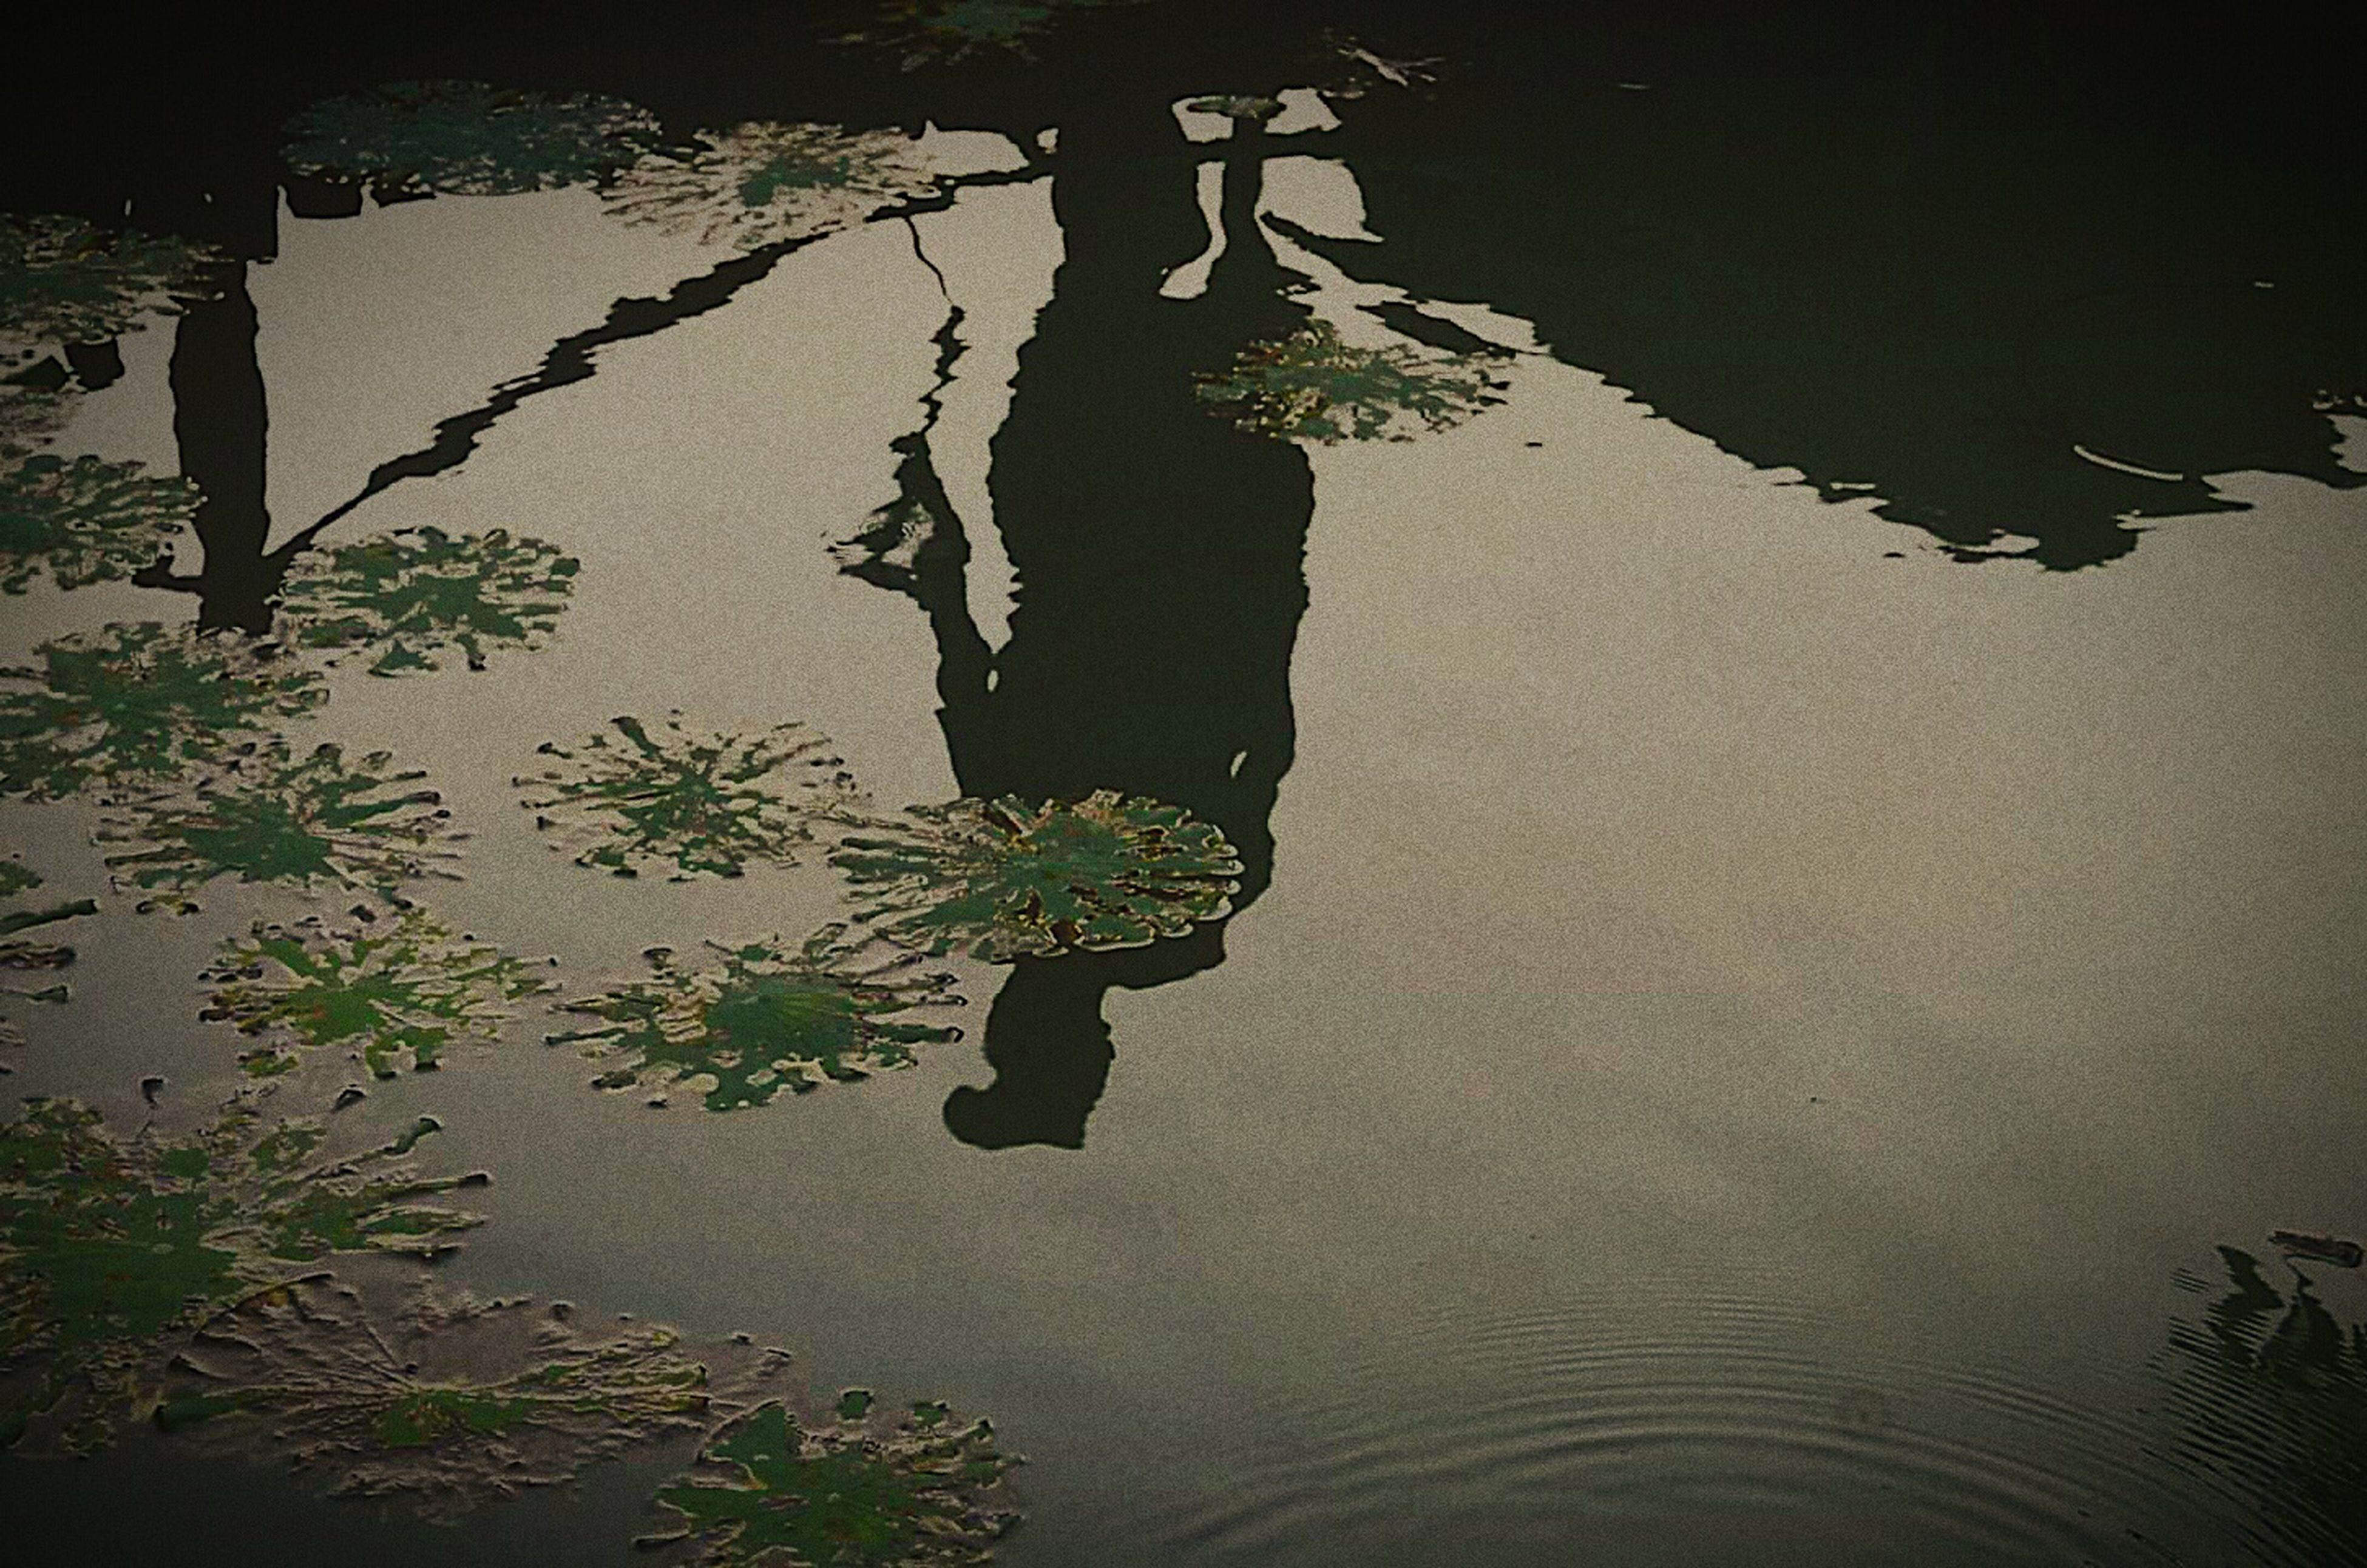 reflection, water, high angle view, waterfront, lake, nature, leaf, outdoors, day, tree, growth, plant, puddle, no people, beauty in nature